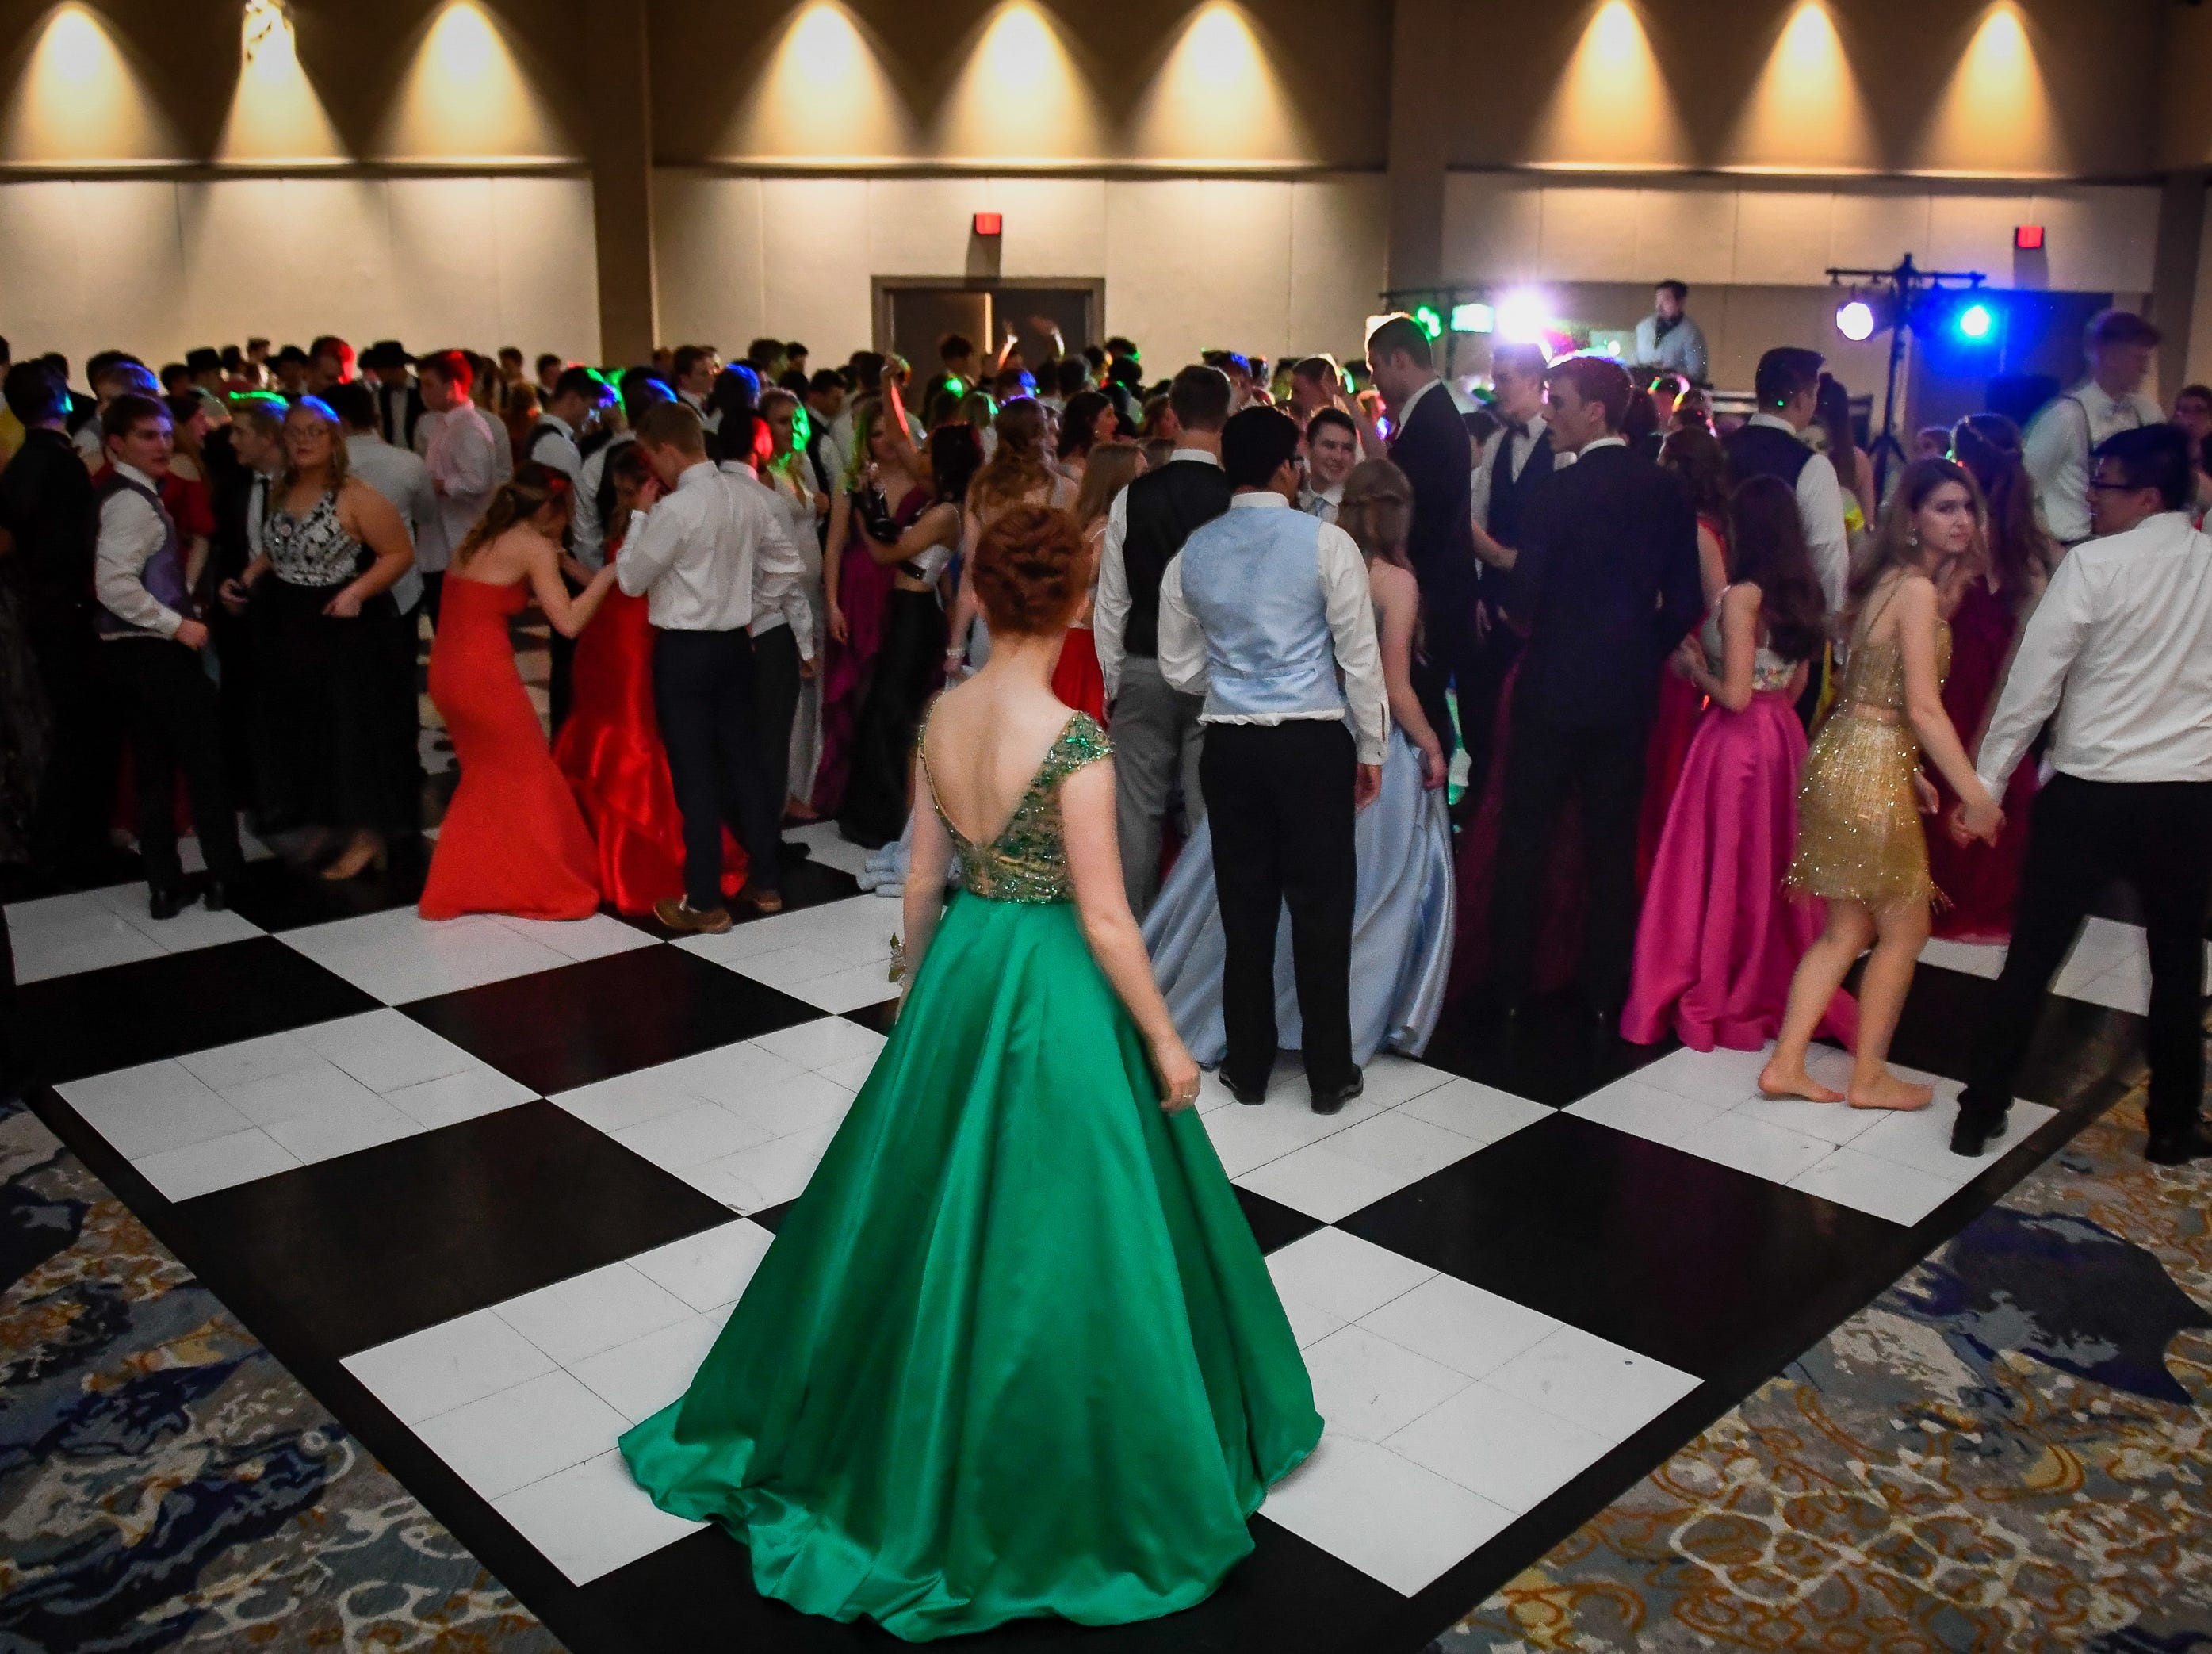 The Memorial High School prom, held at the Old National Events Center Plaza Saturday, April 27, 2019.